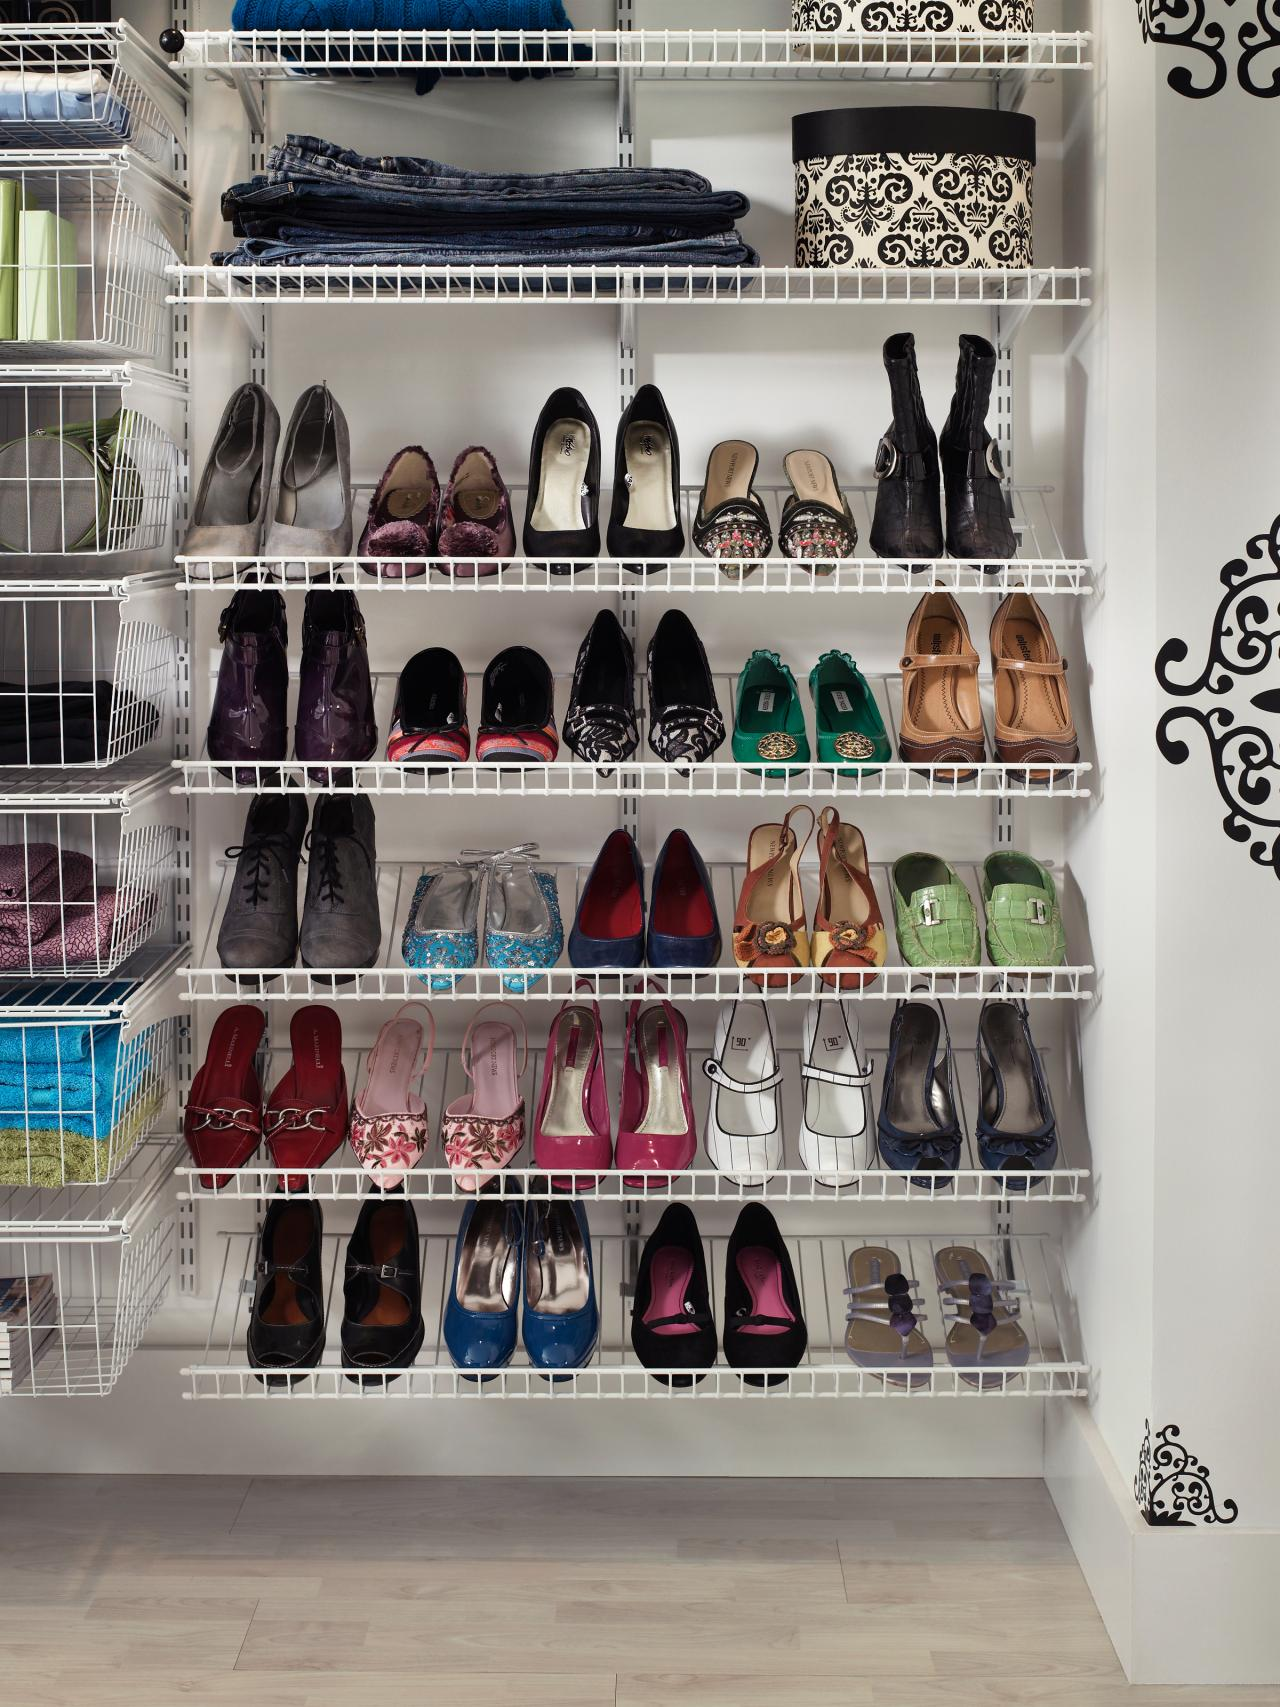 Amazing Shoe Racks for Closets wall mounted shoe racks for closets